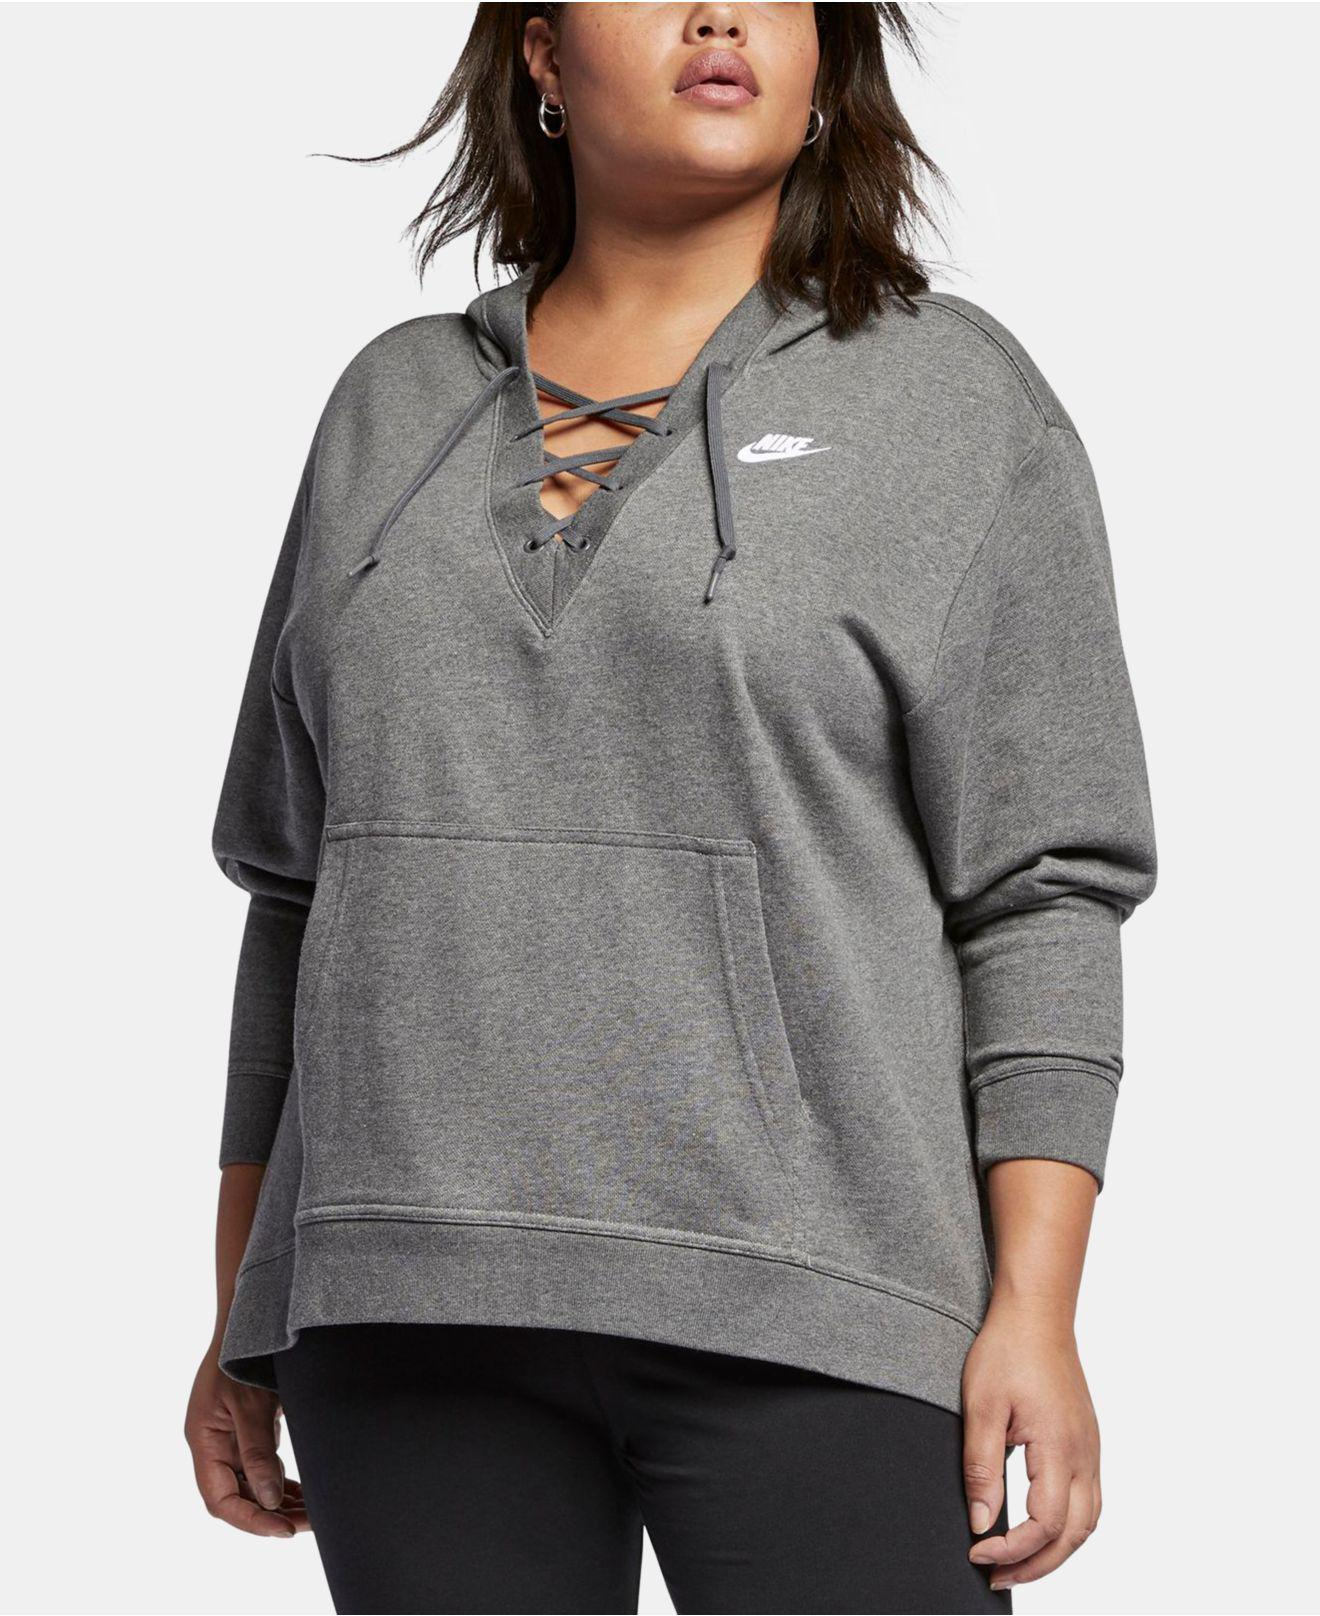 cb17719d89b6 Lyst - Nike Rally Lace-up Hoodie in Gray - Save 25%